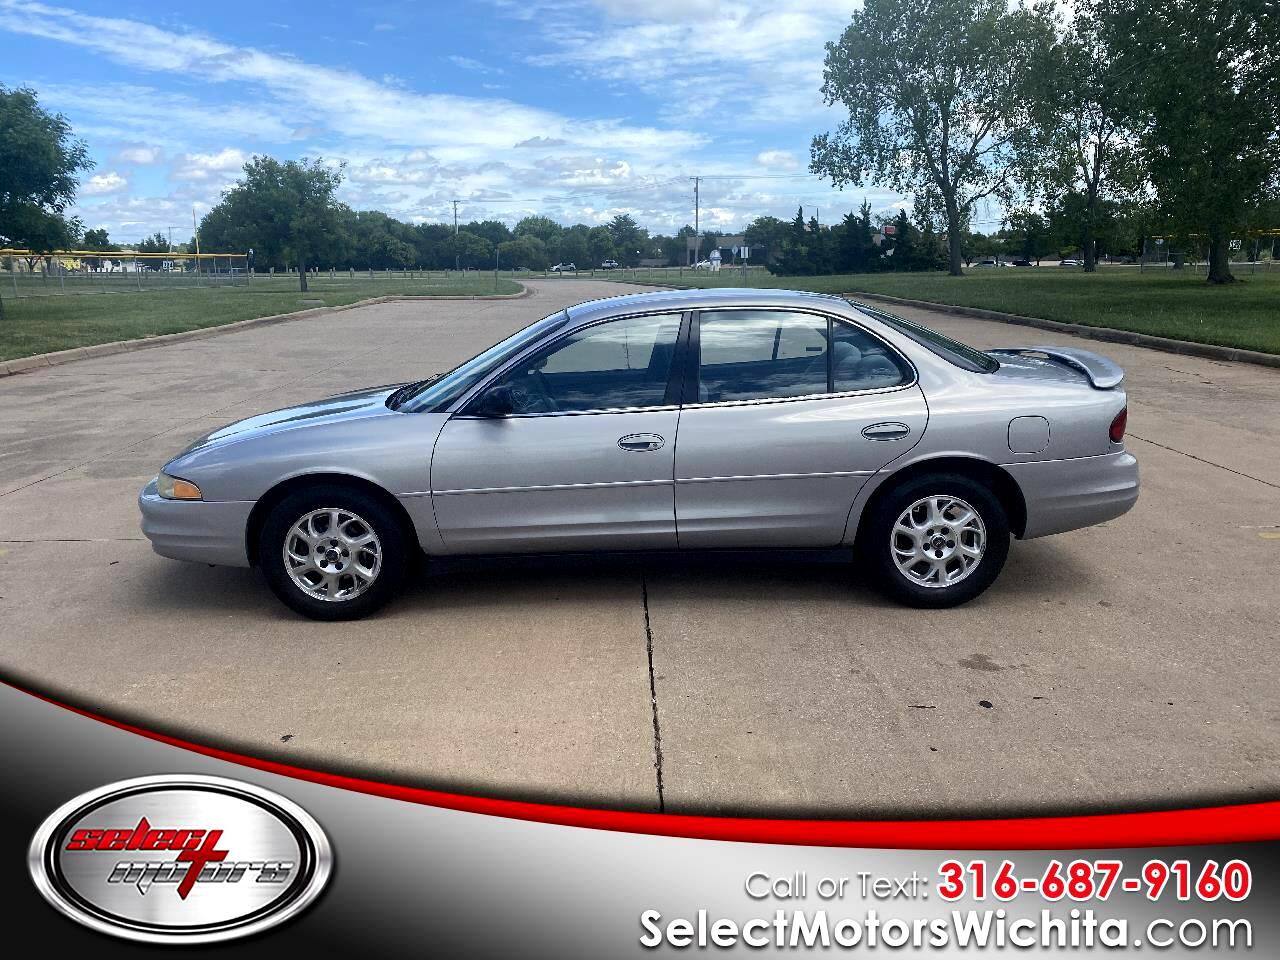 Oldsmobile Intrigue 4dr Sdn GX 2000